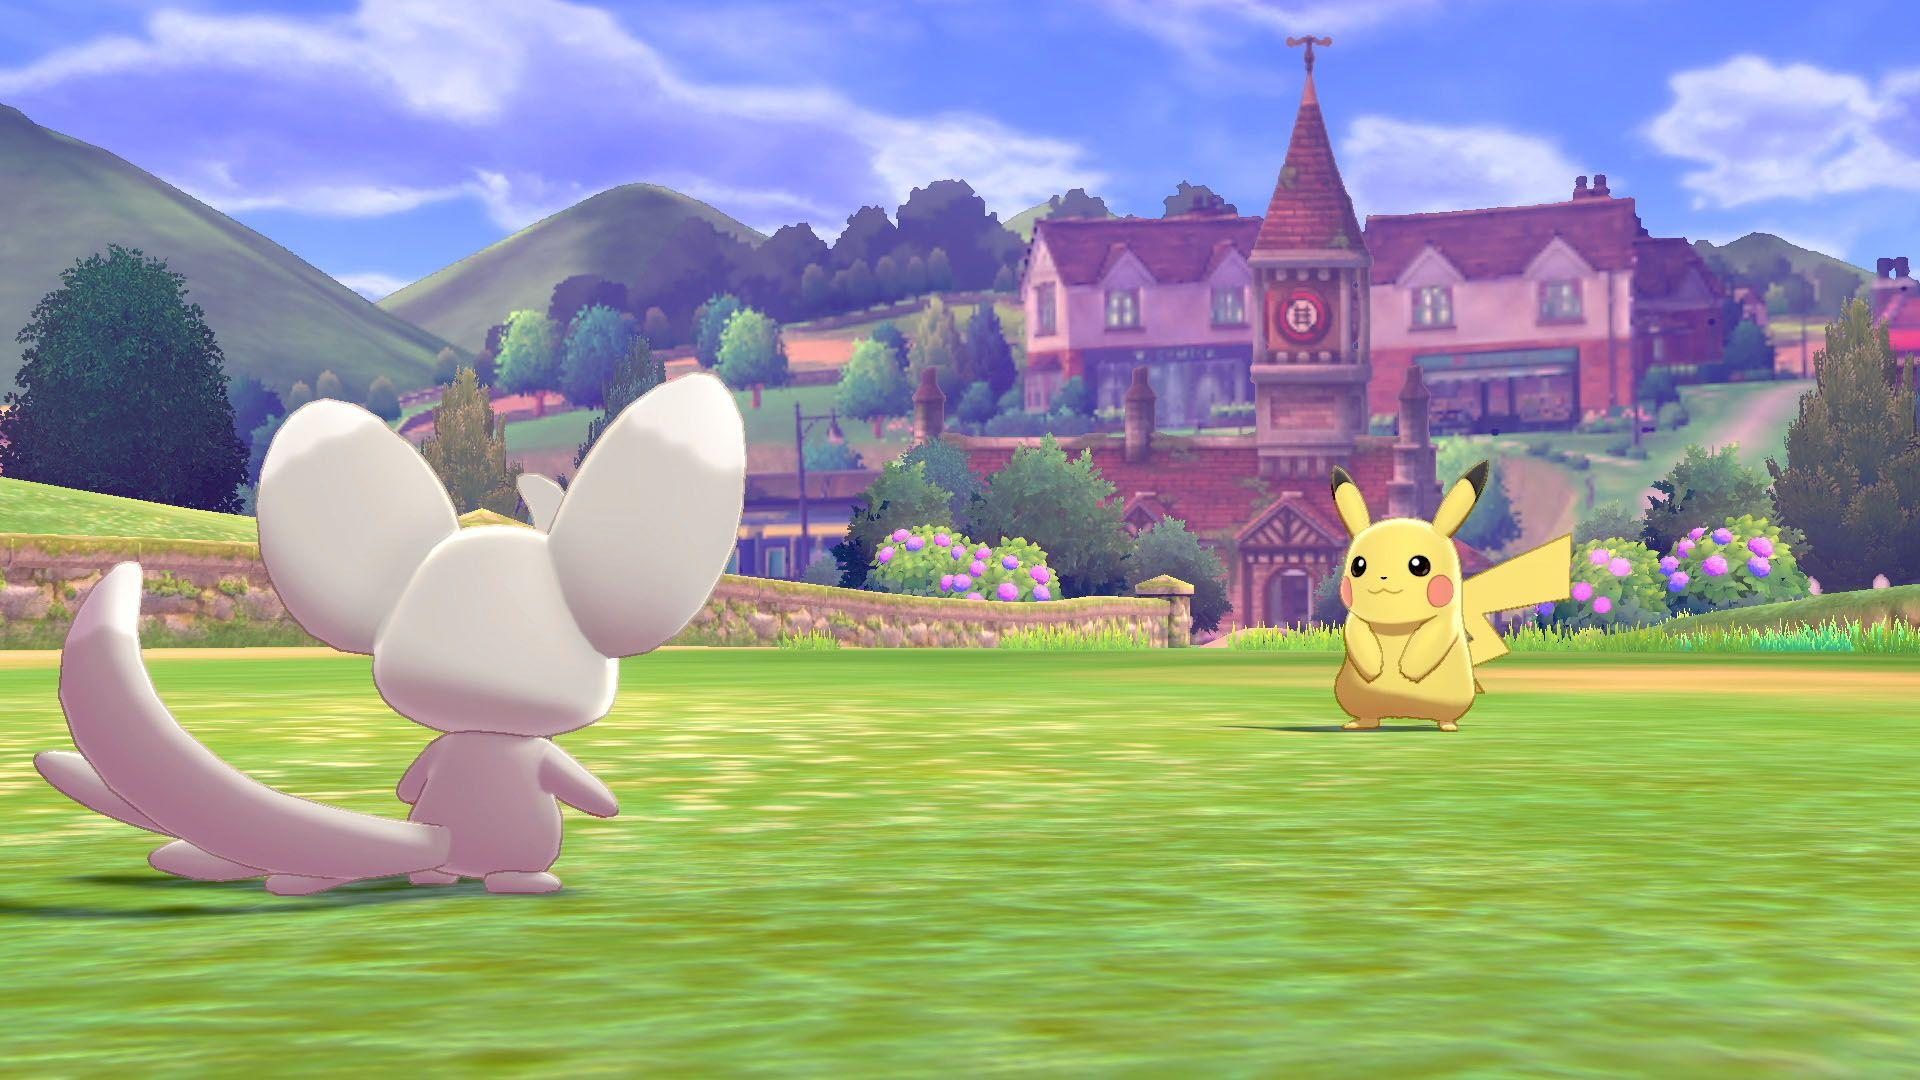 New Pokemon Sword and Shield Trailer Shown During Nintendo Direct Today